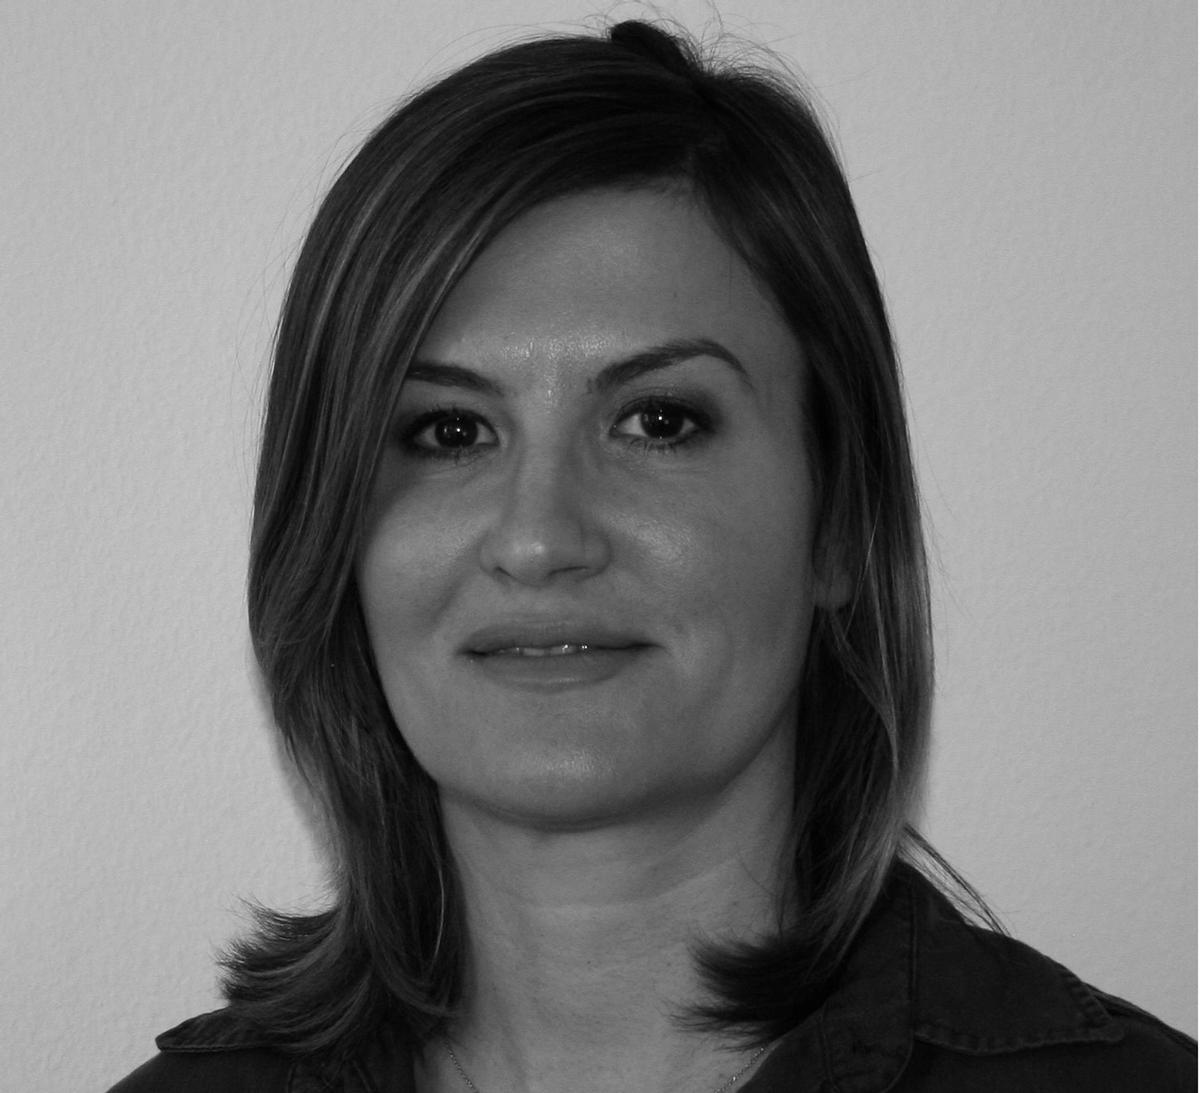 Emma Darby was appointed as Resense chief operations officer in 2019 / Resense